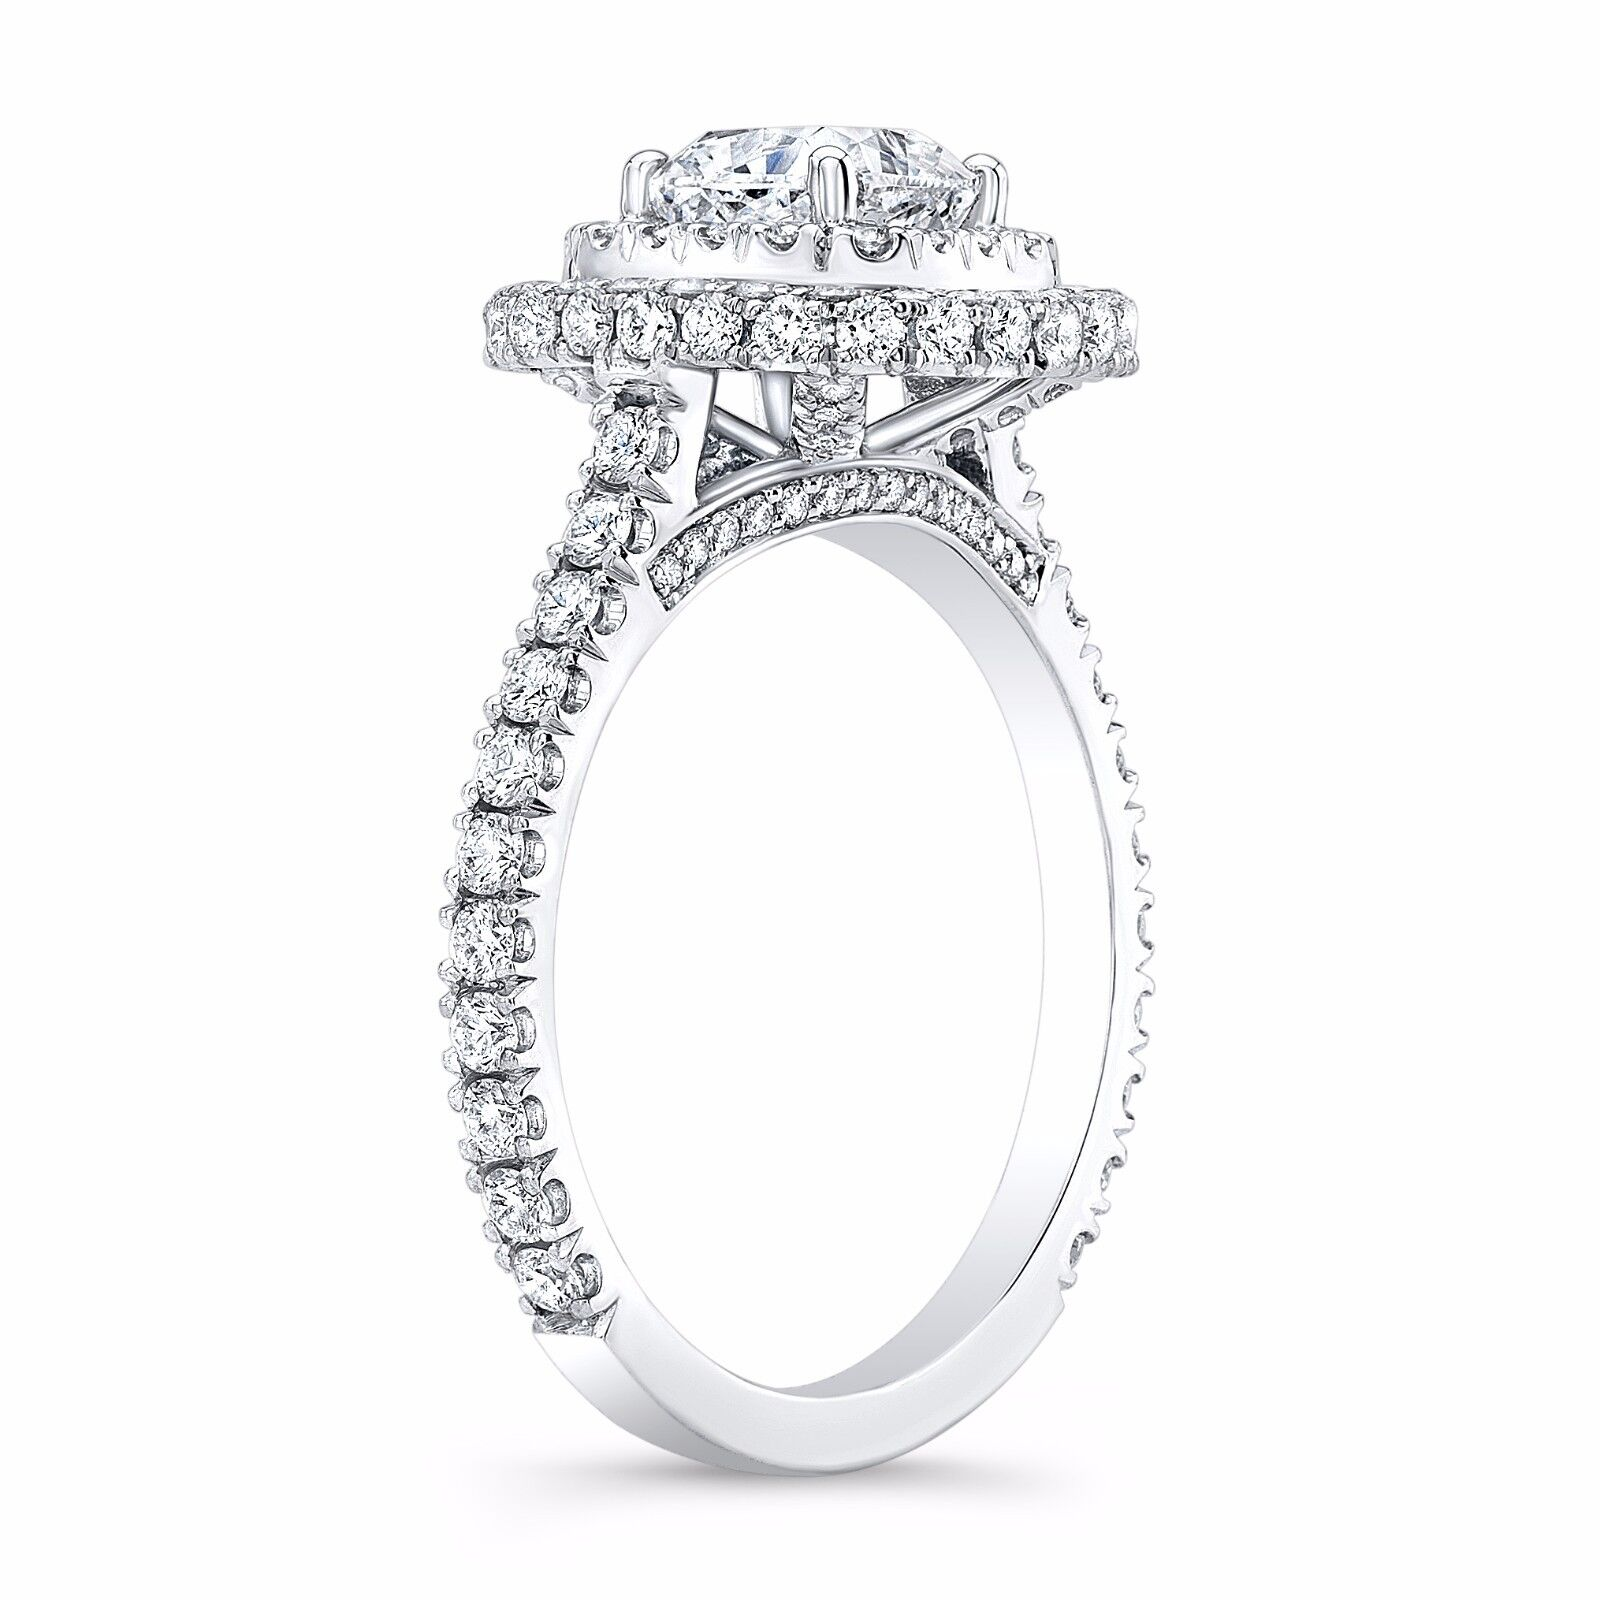 2.40ctw Natural Cushion Double Halo U-Prong Diamond Engagement Ring - GIA 1